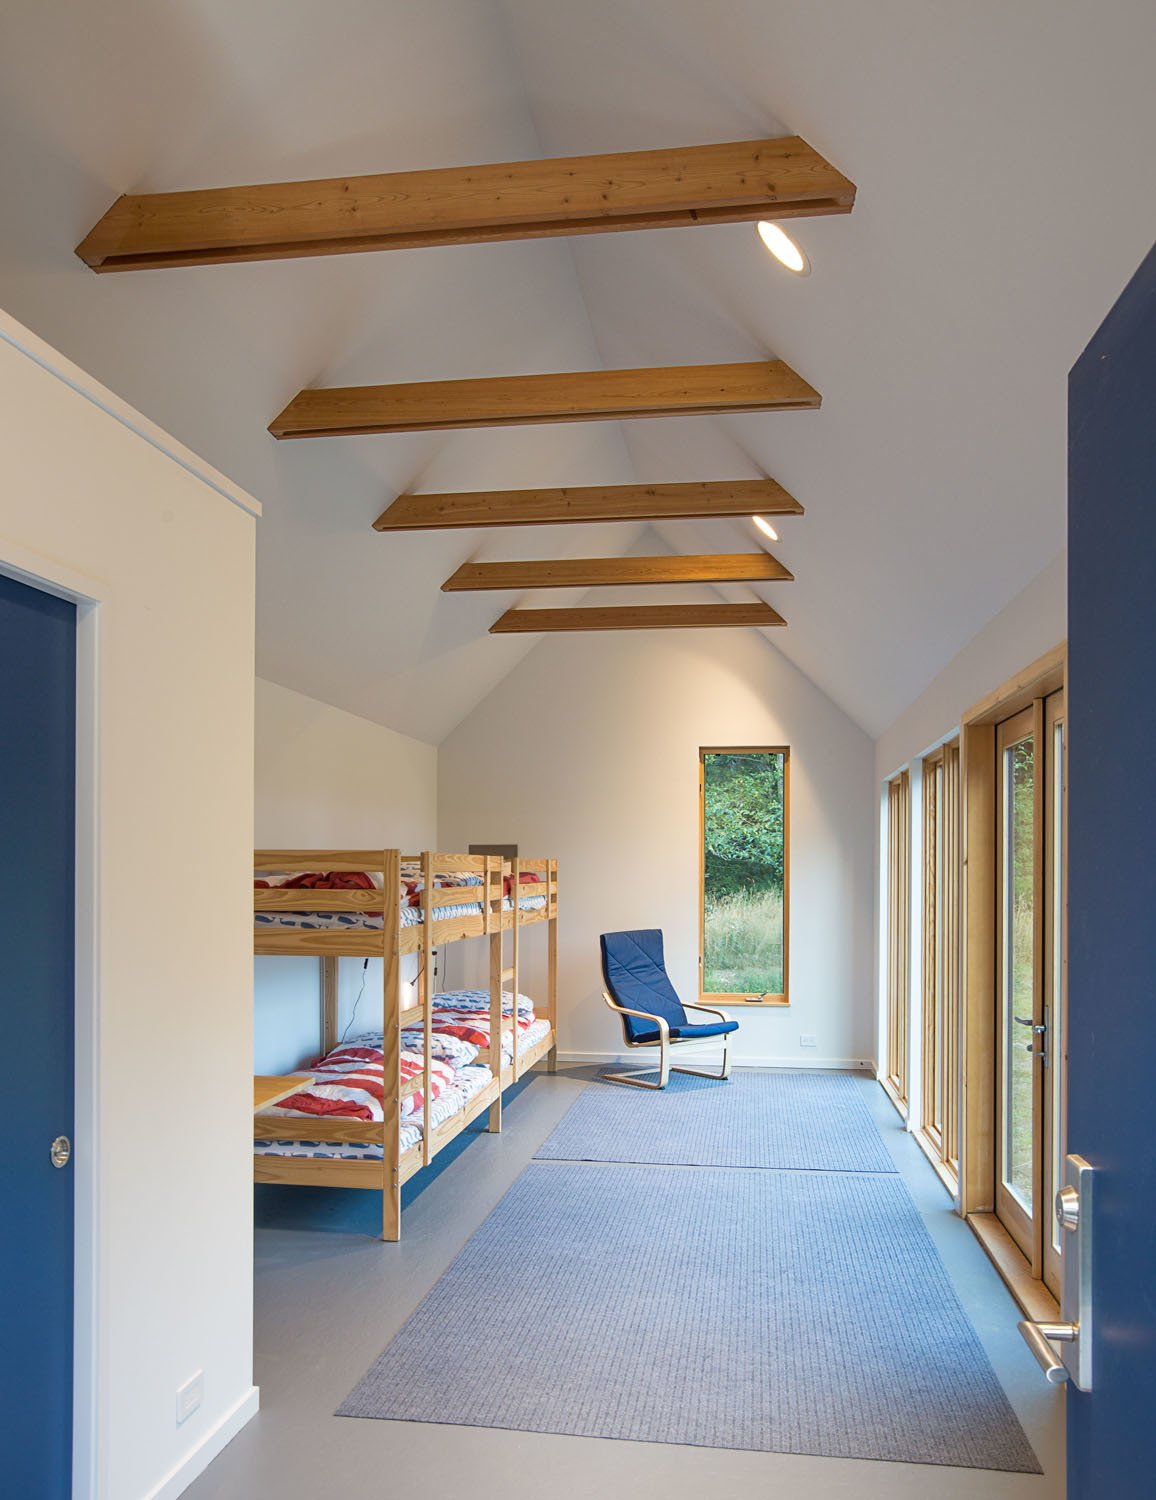 Kids, Bedroom, Toddler, Bunks, Pre-Teen, Neutral, Chair, and Rug An existing structure was moved, remodeled, and repurposed as a bunkroom.  Best Kids Bunks Toddler Rug Chair Photos from The Coyle